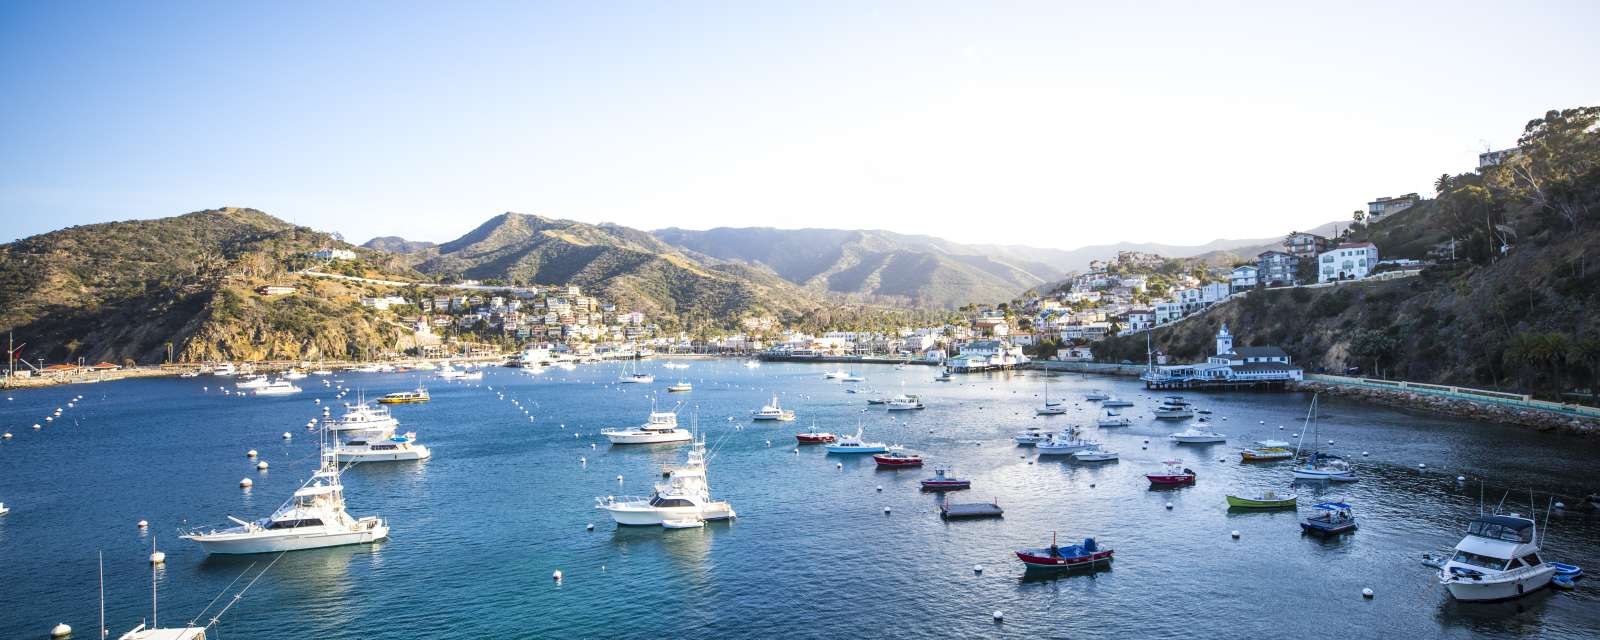 Privacy Policy Visit Catalina Island